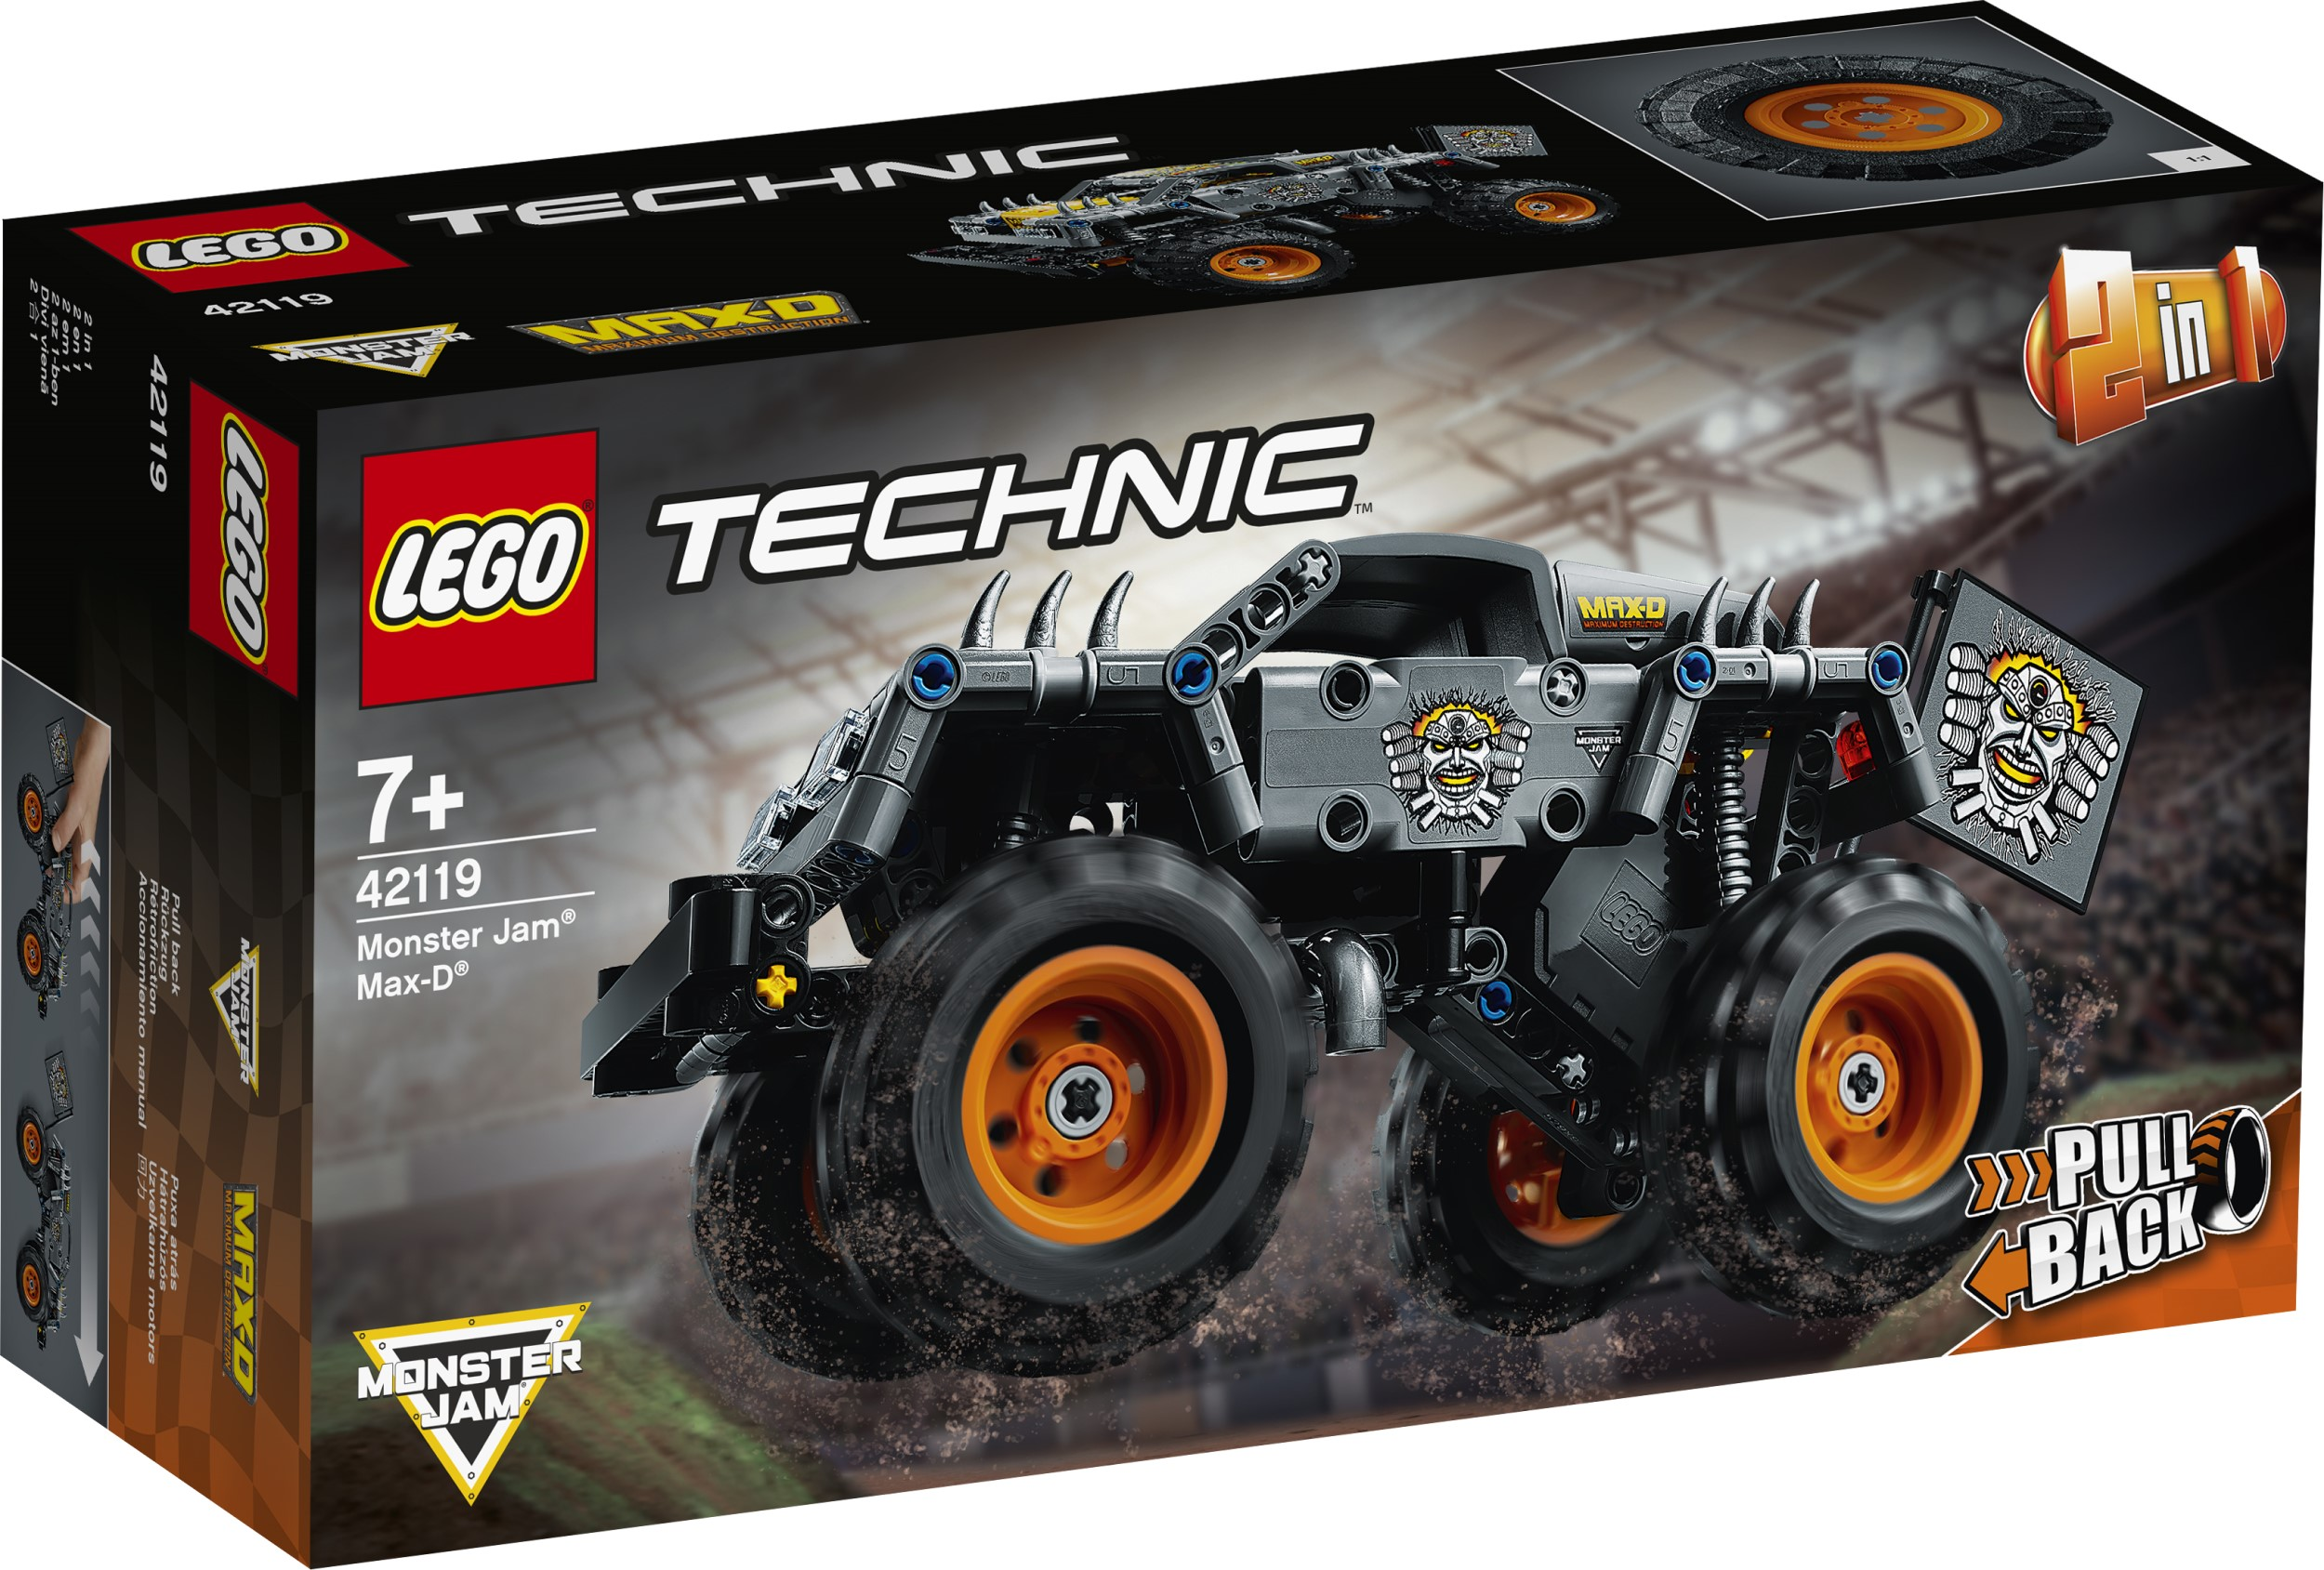 LEGO Technic Monster Jam series gets two new monster truck replicas 16